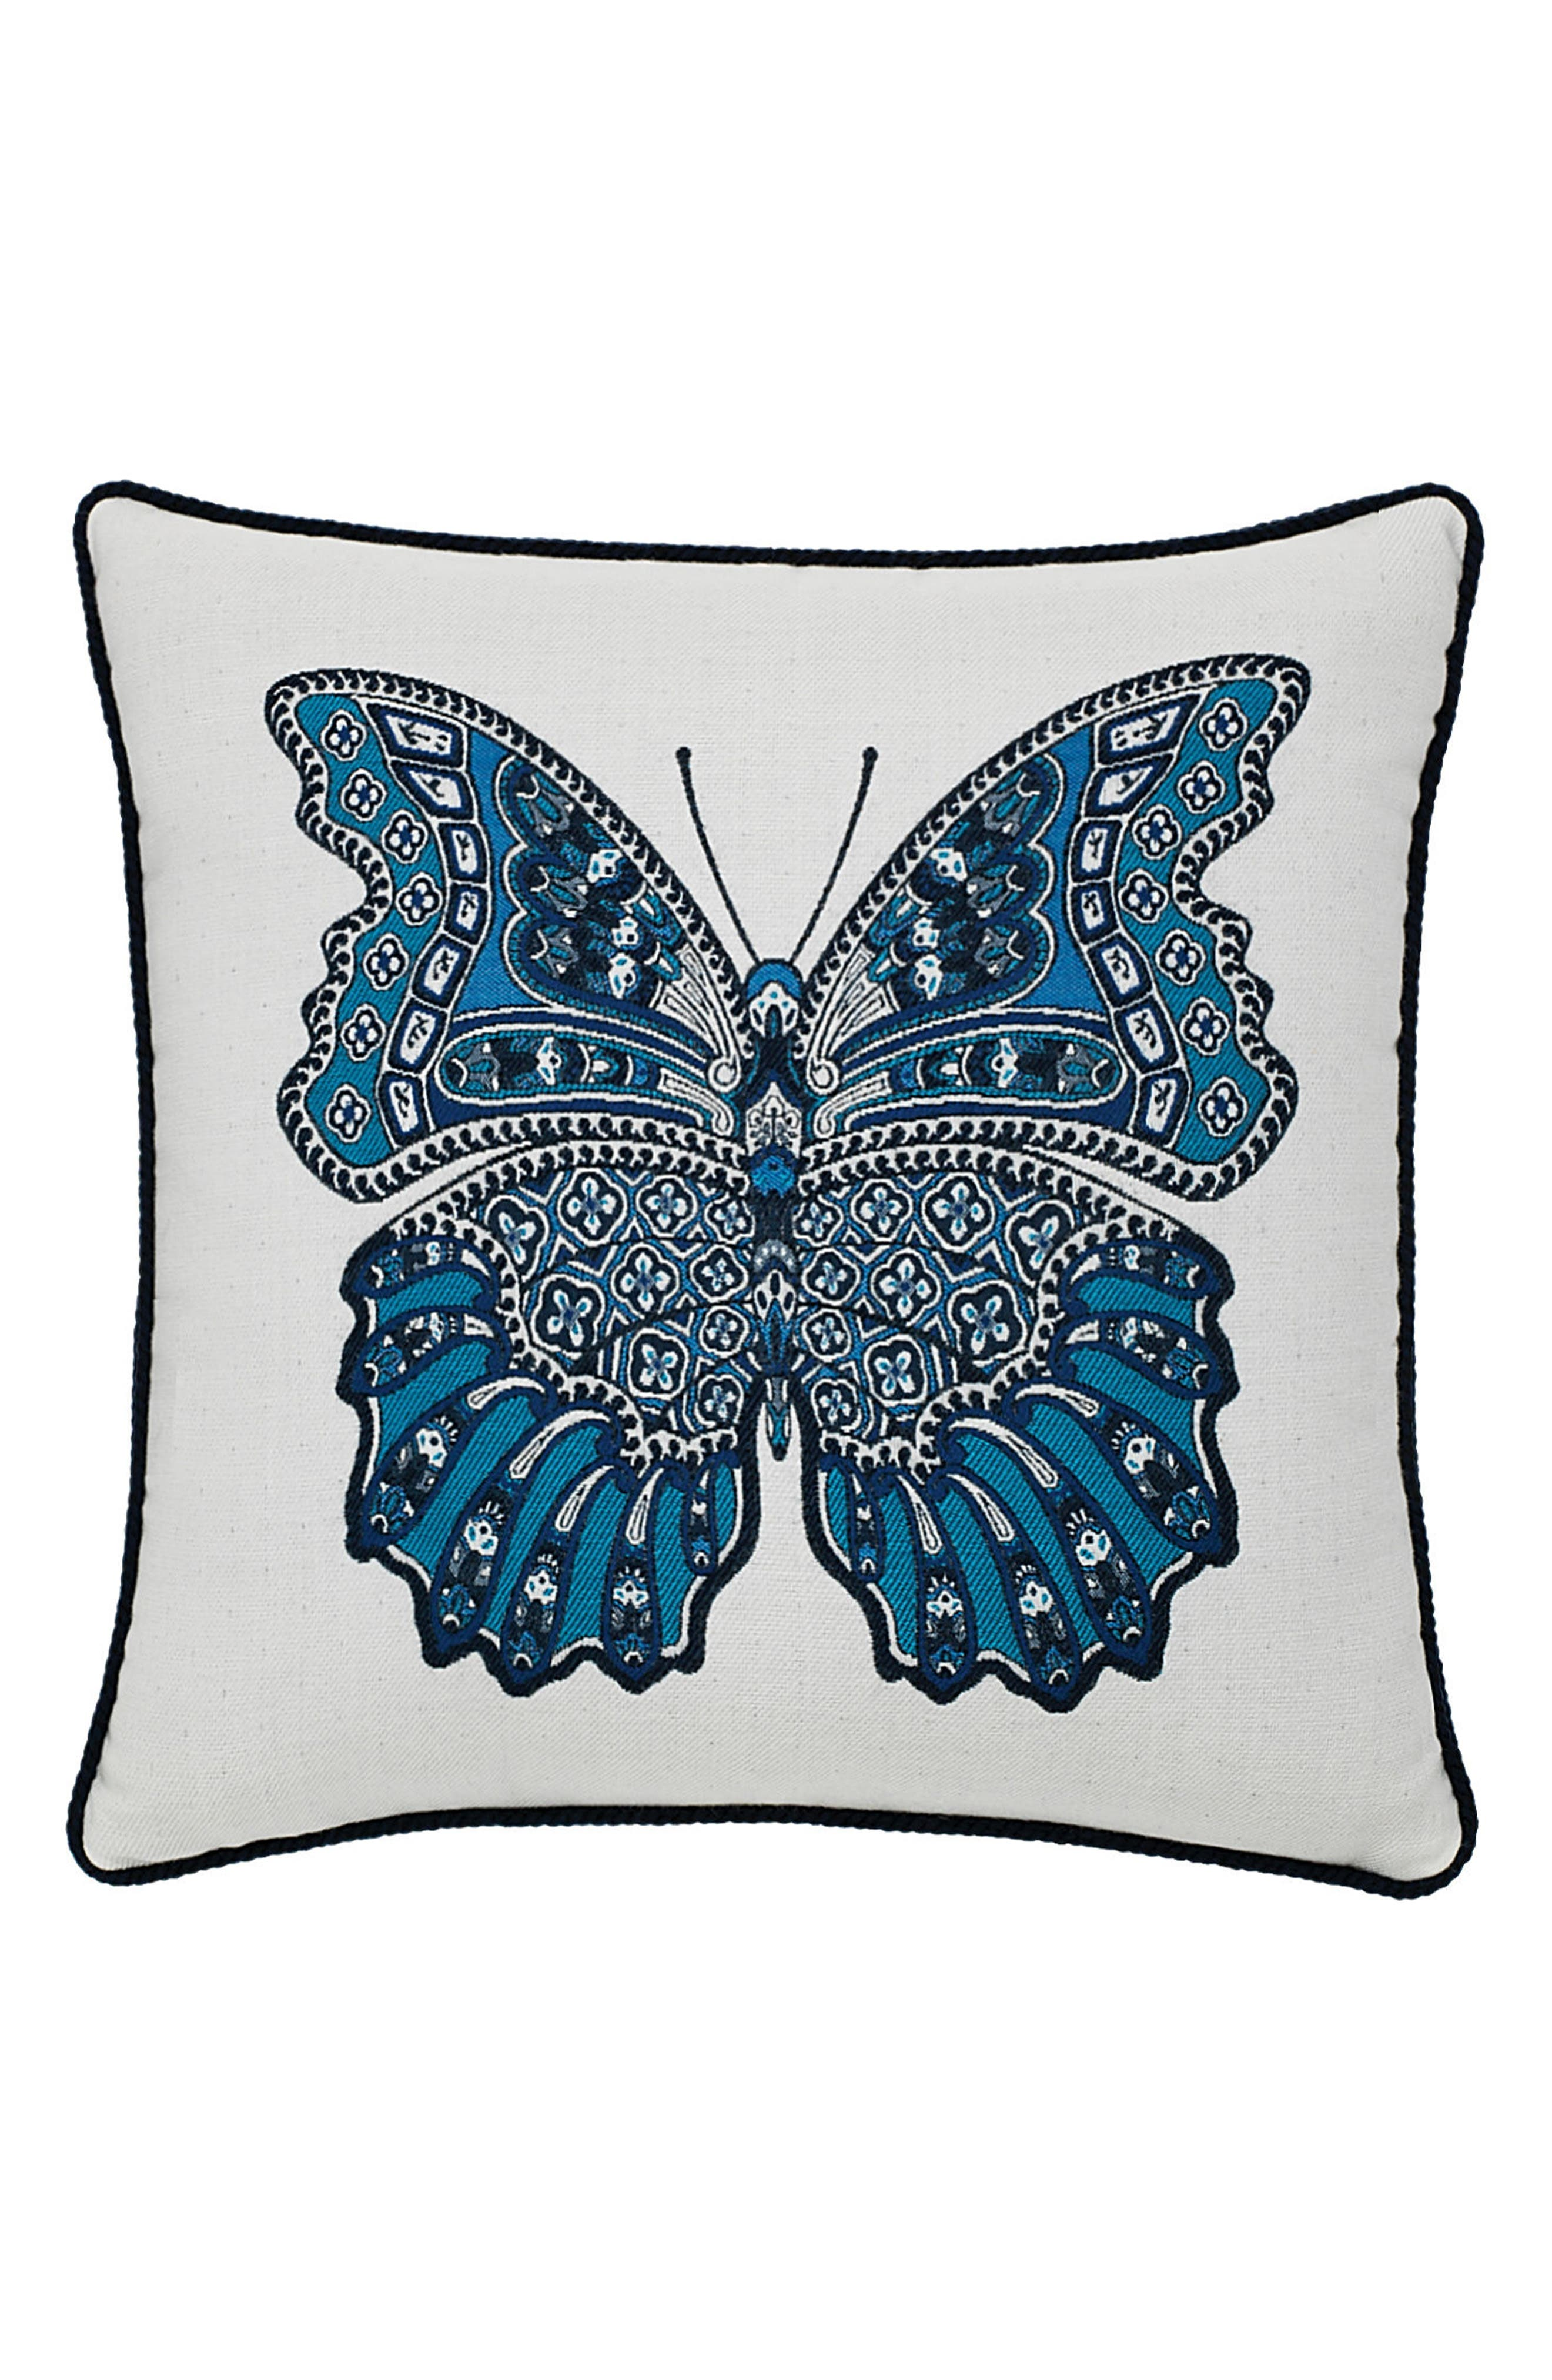 Mariposa Azure Indoor/Outdoor Accent Pillow,                         Main,                         color, Blue/ White